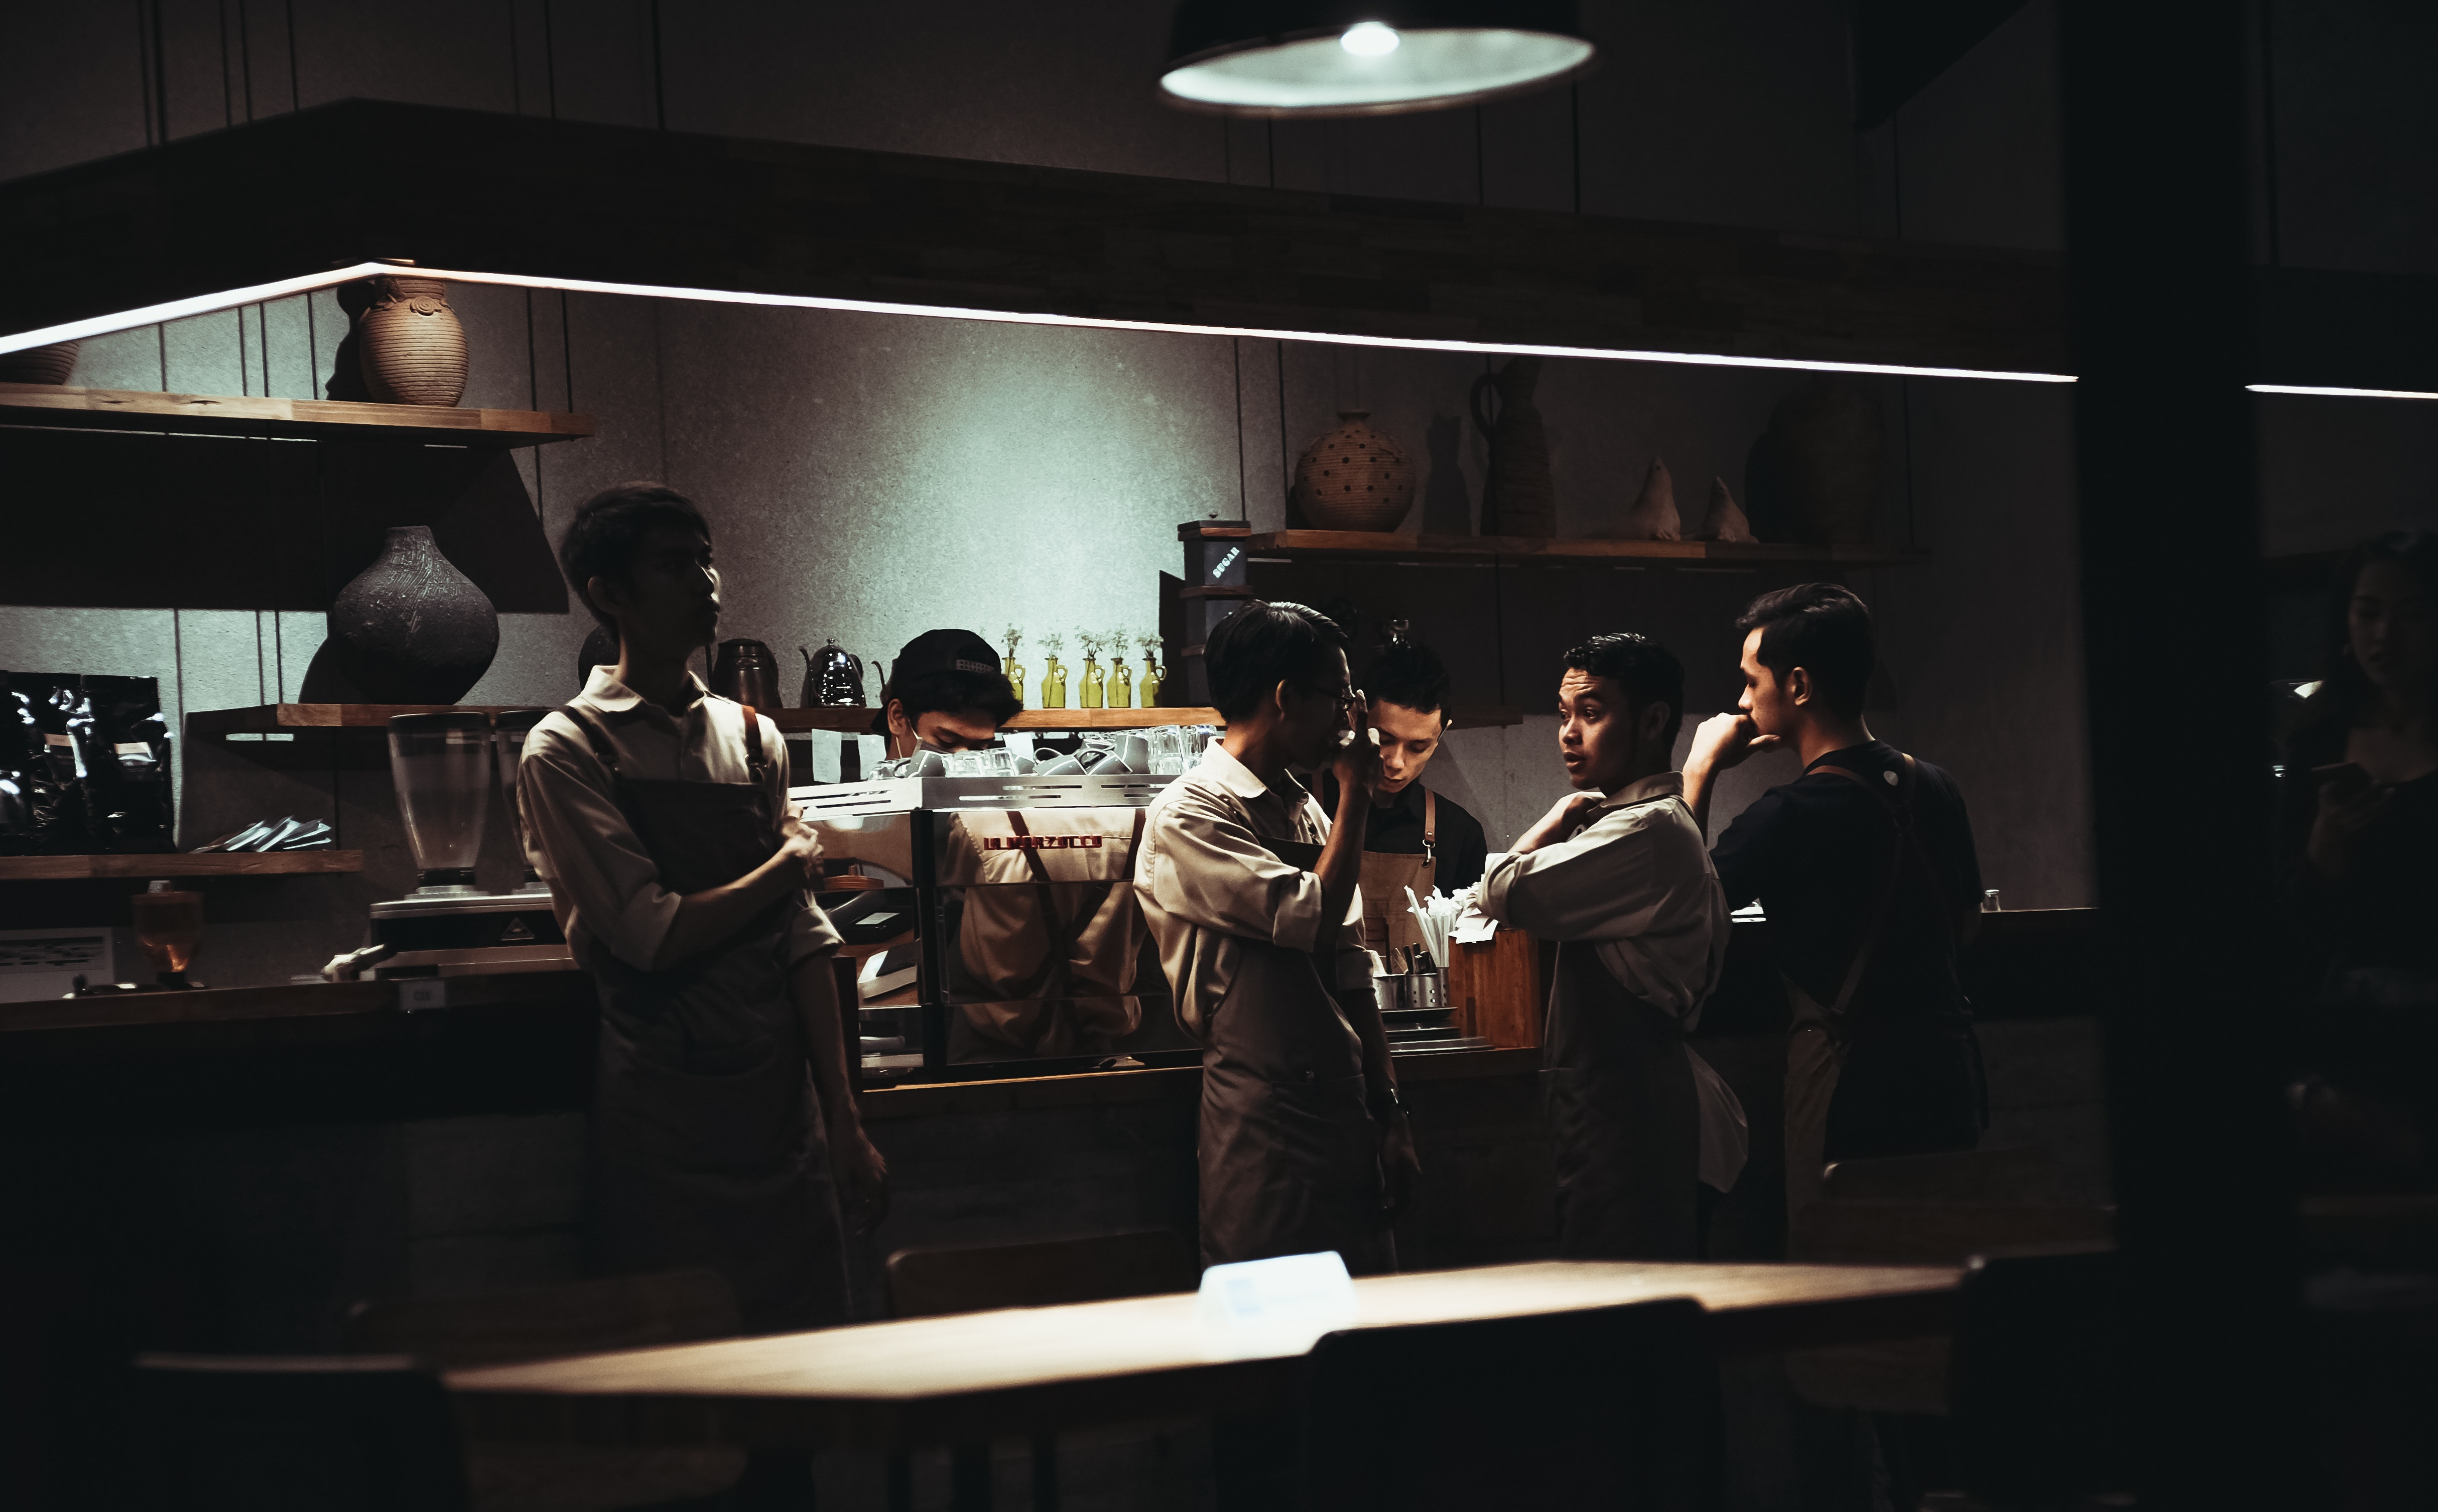 people crowded around a kitchen